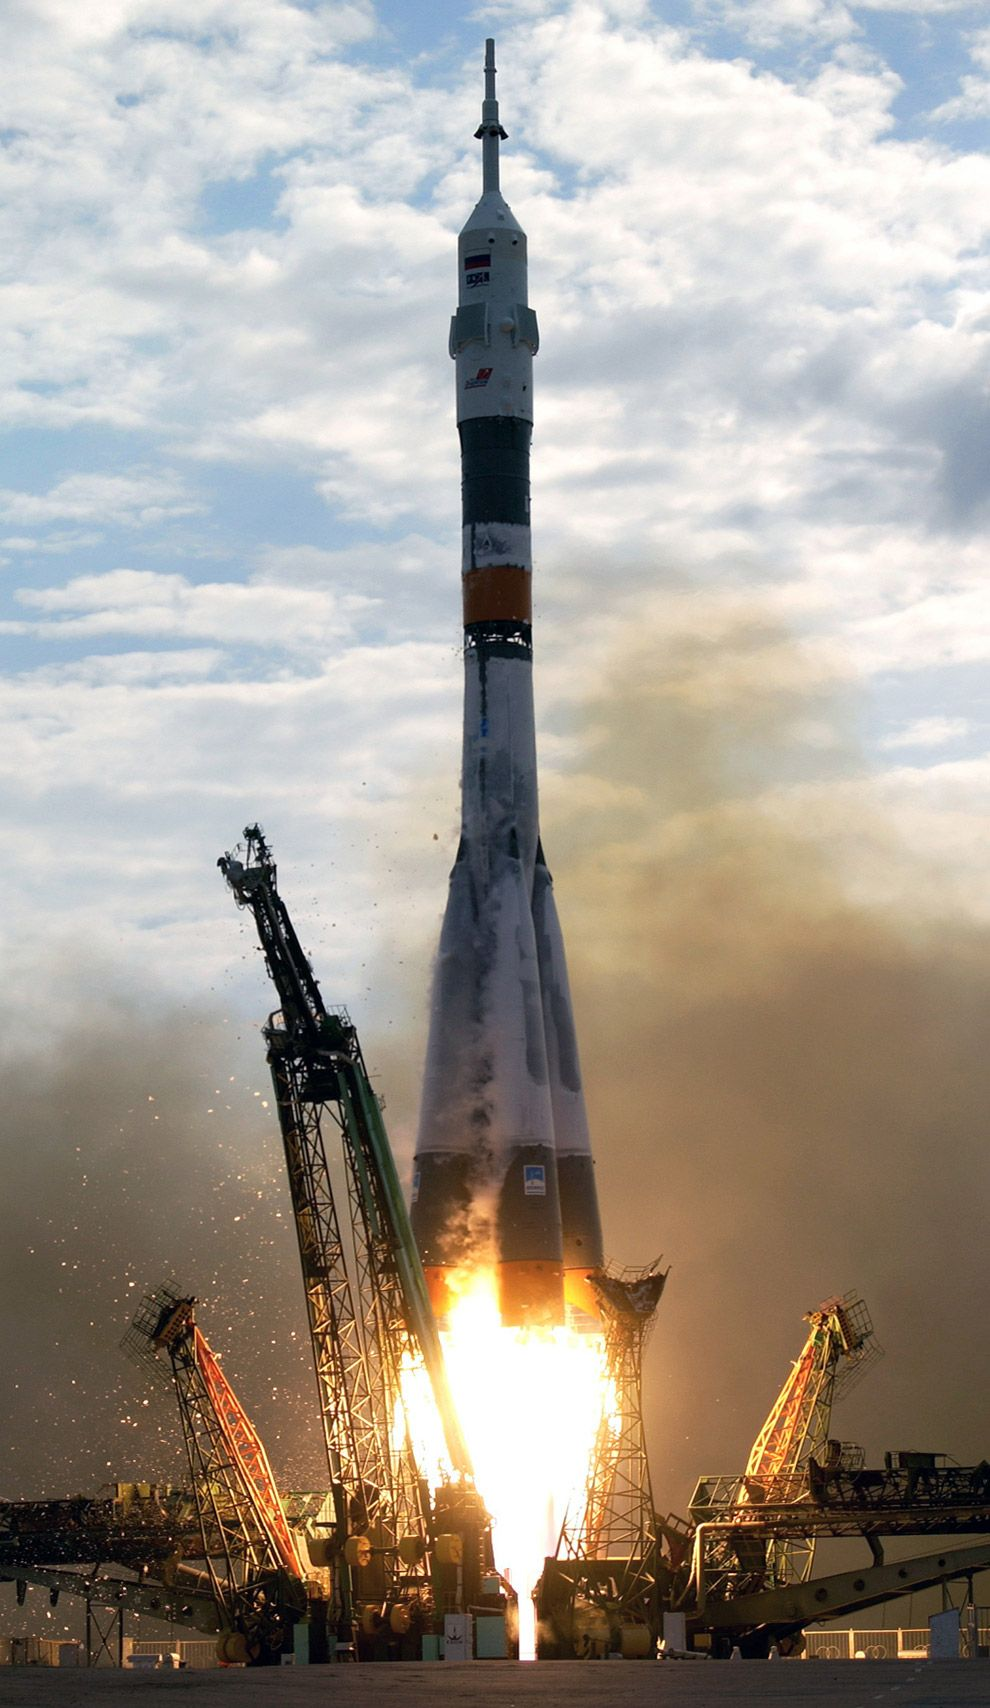 A Soyuz spacecraft lifts off from the Baikonur Cosmodrome, Kazakhstan, at 10:54 p.m. (CDT) on April 26, 2003